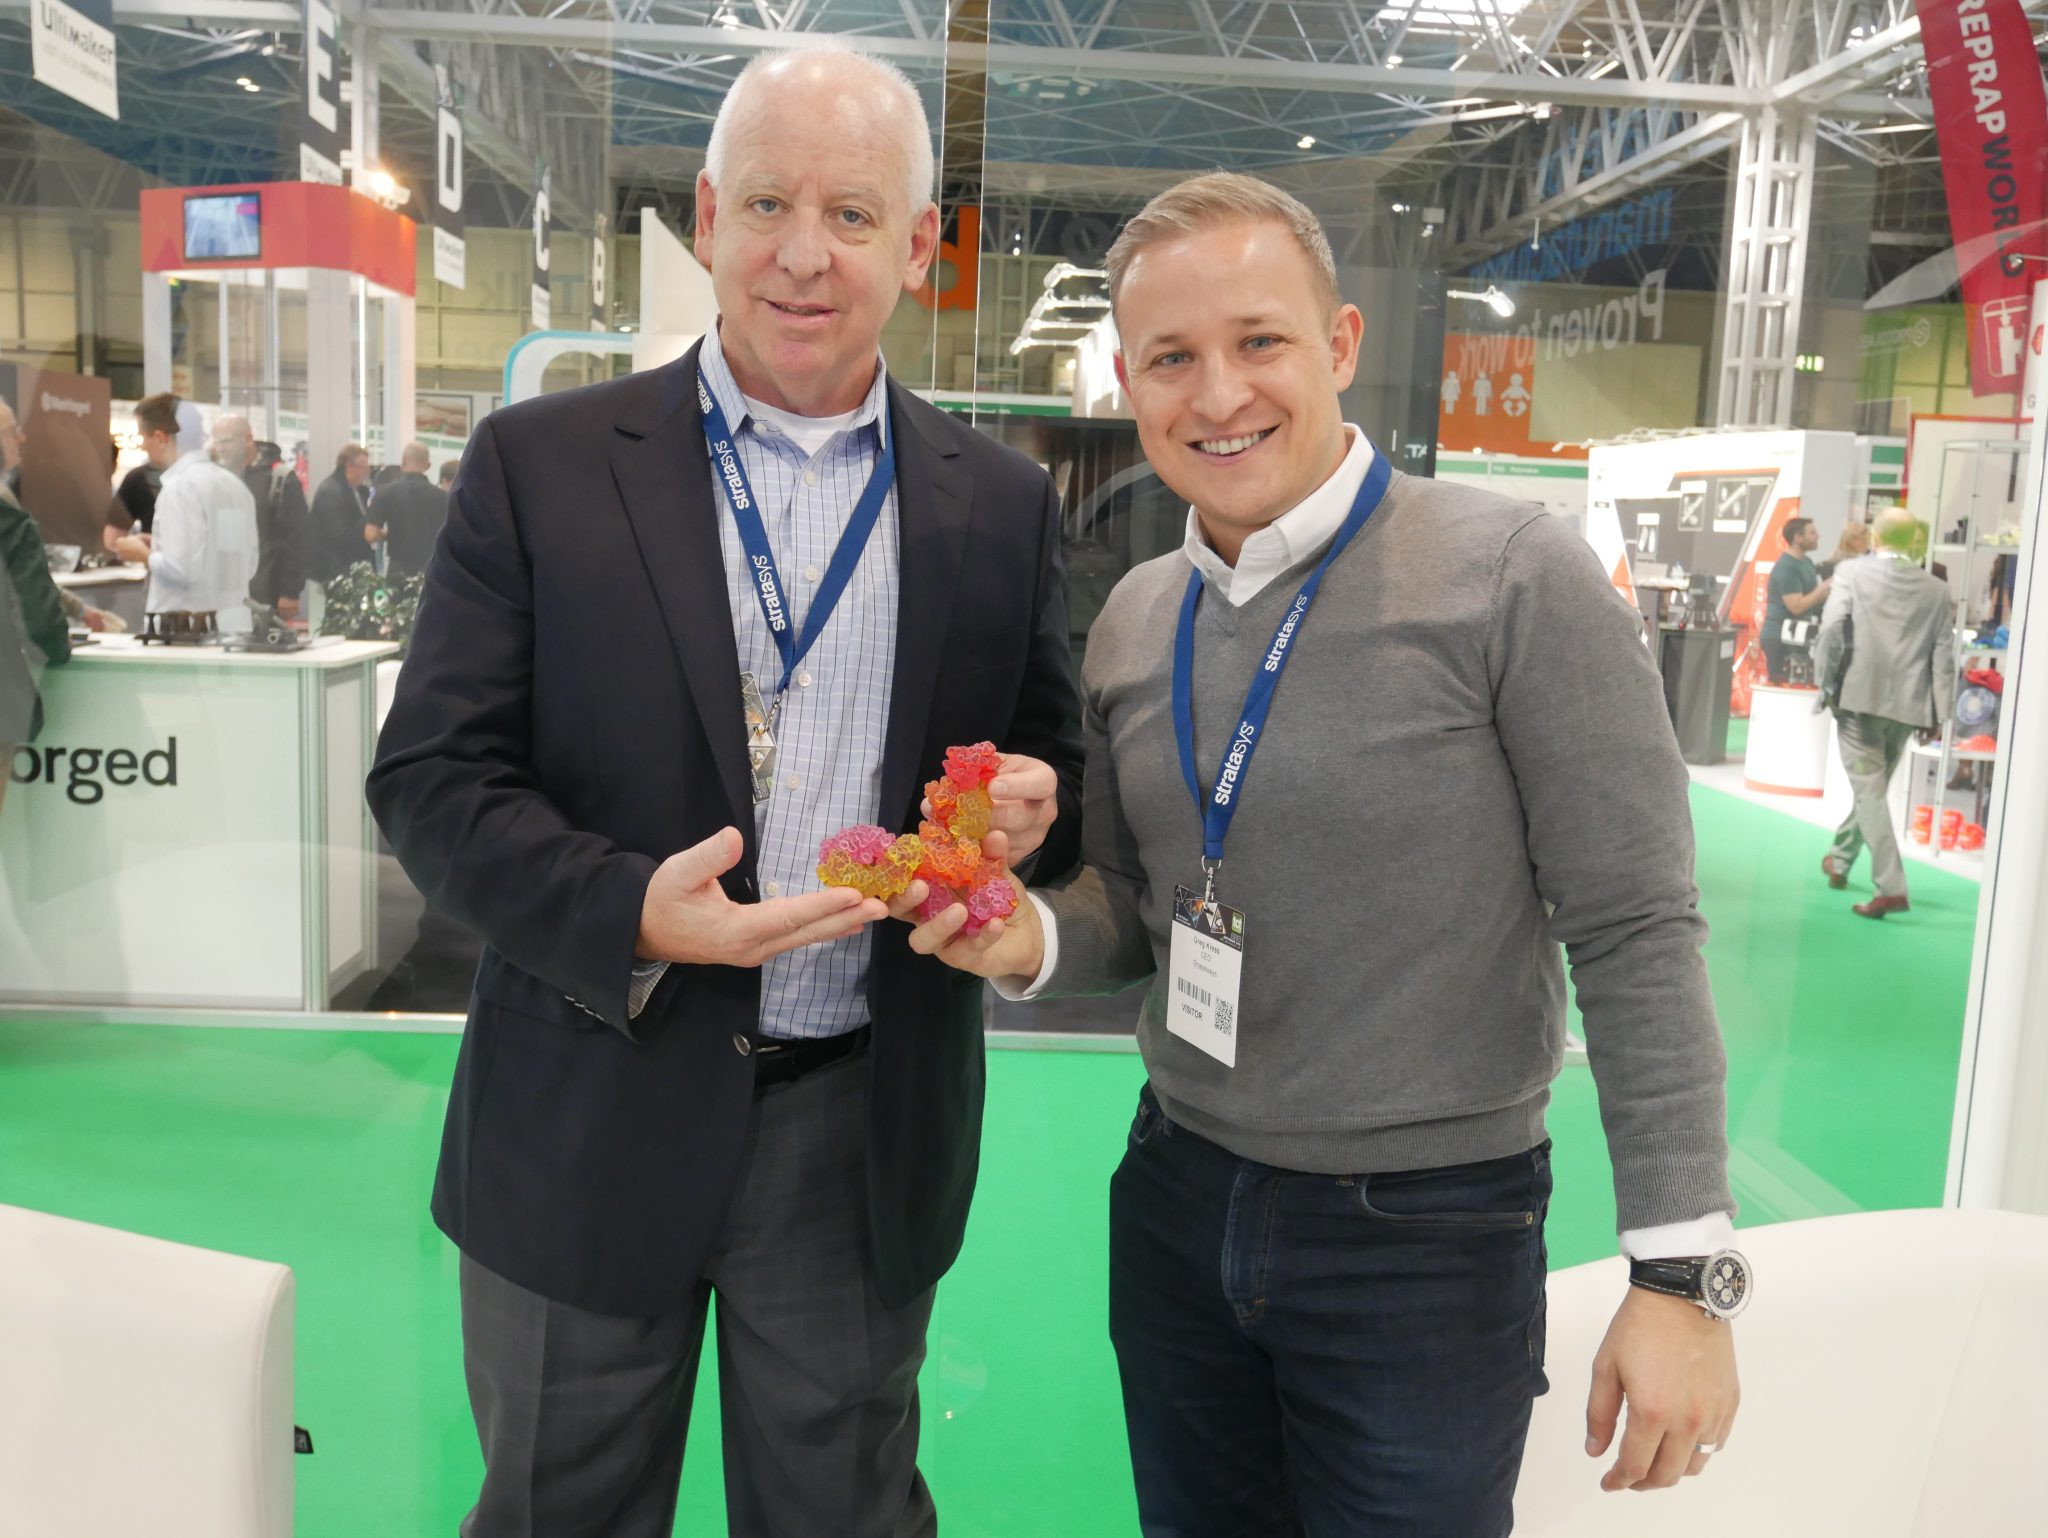 (Right) Pat Carey Senior Vice President Sales at Stratasys and Greg Kress CEO of Shapeways holding a 3D printed biological model manufactured on the J750. Photo by Tia Vialva.